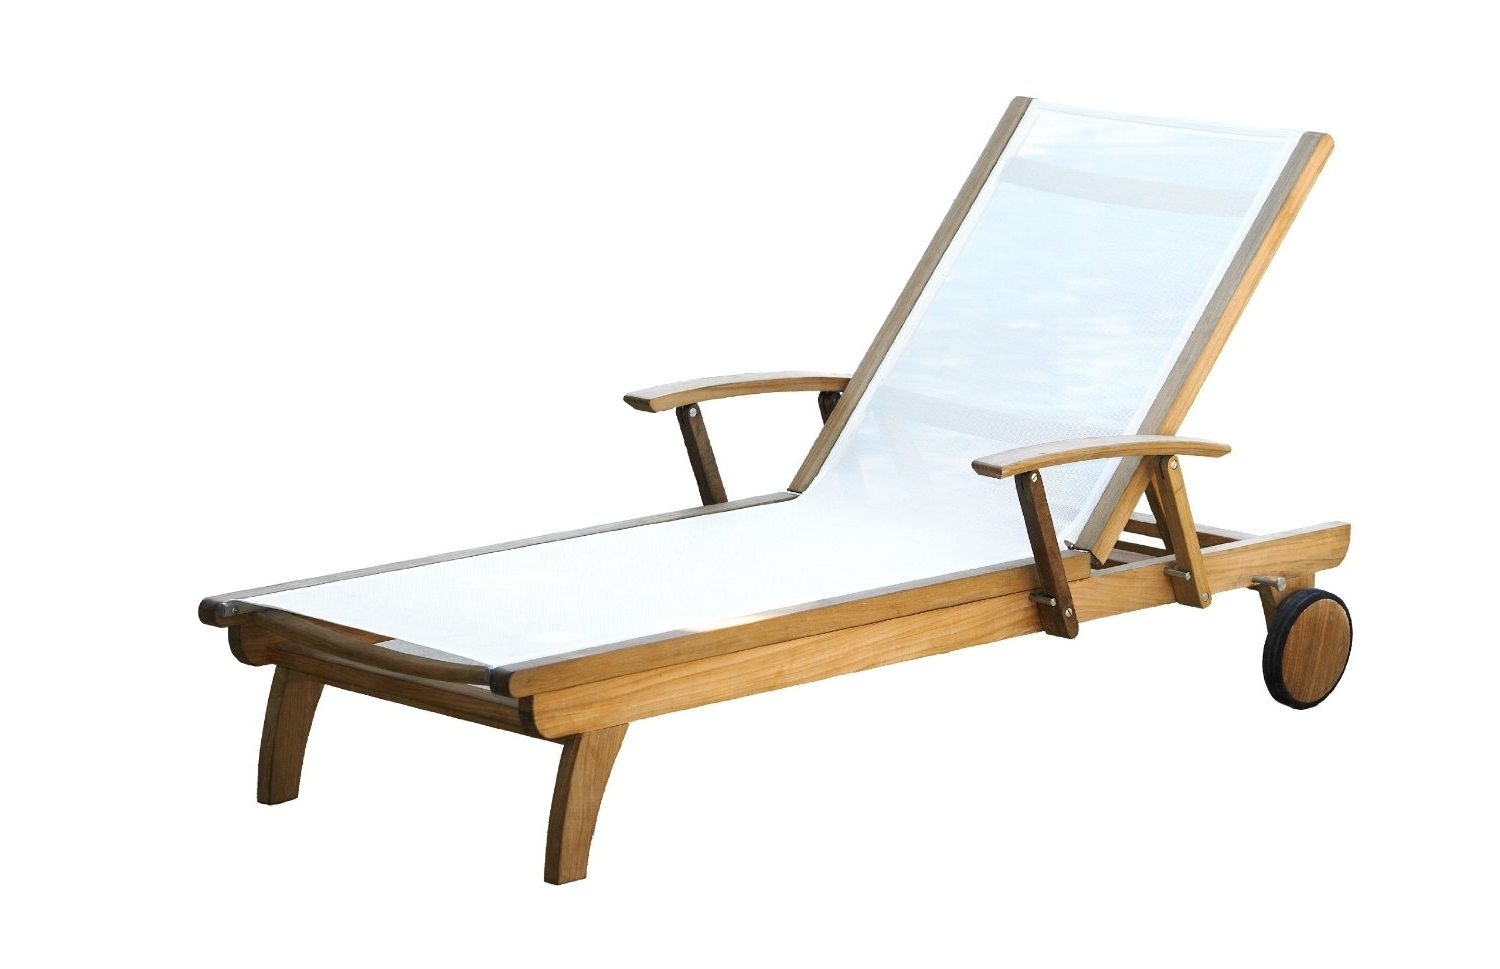 Trendy Lounge Chairs : Inexpensive Outdoor Chaise Lounge Discount Pool Regarding Inexpensive Outdoor Chaise Lounge Chairs (View 10 of 15)